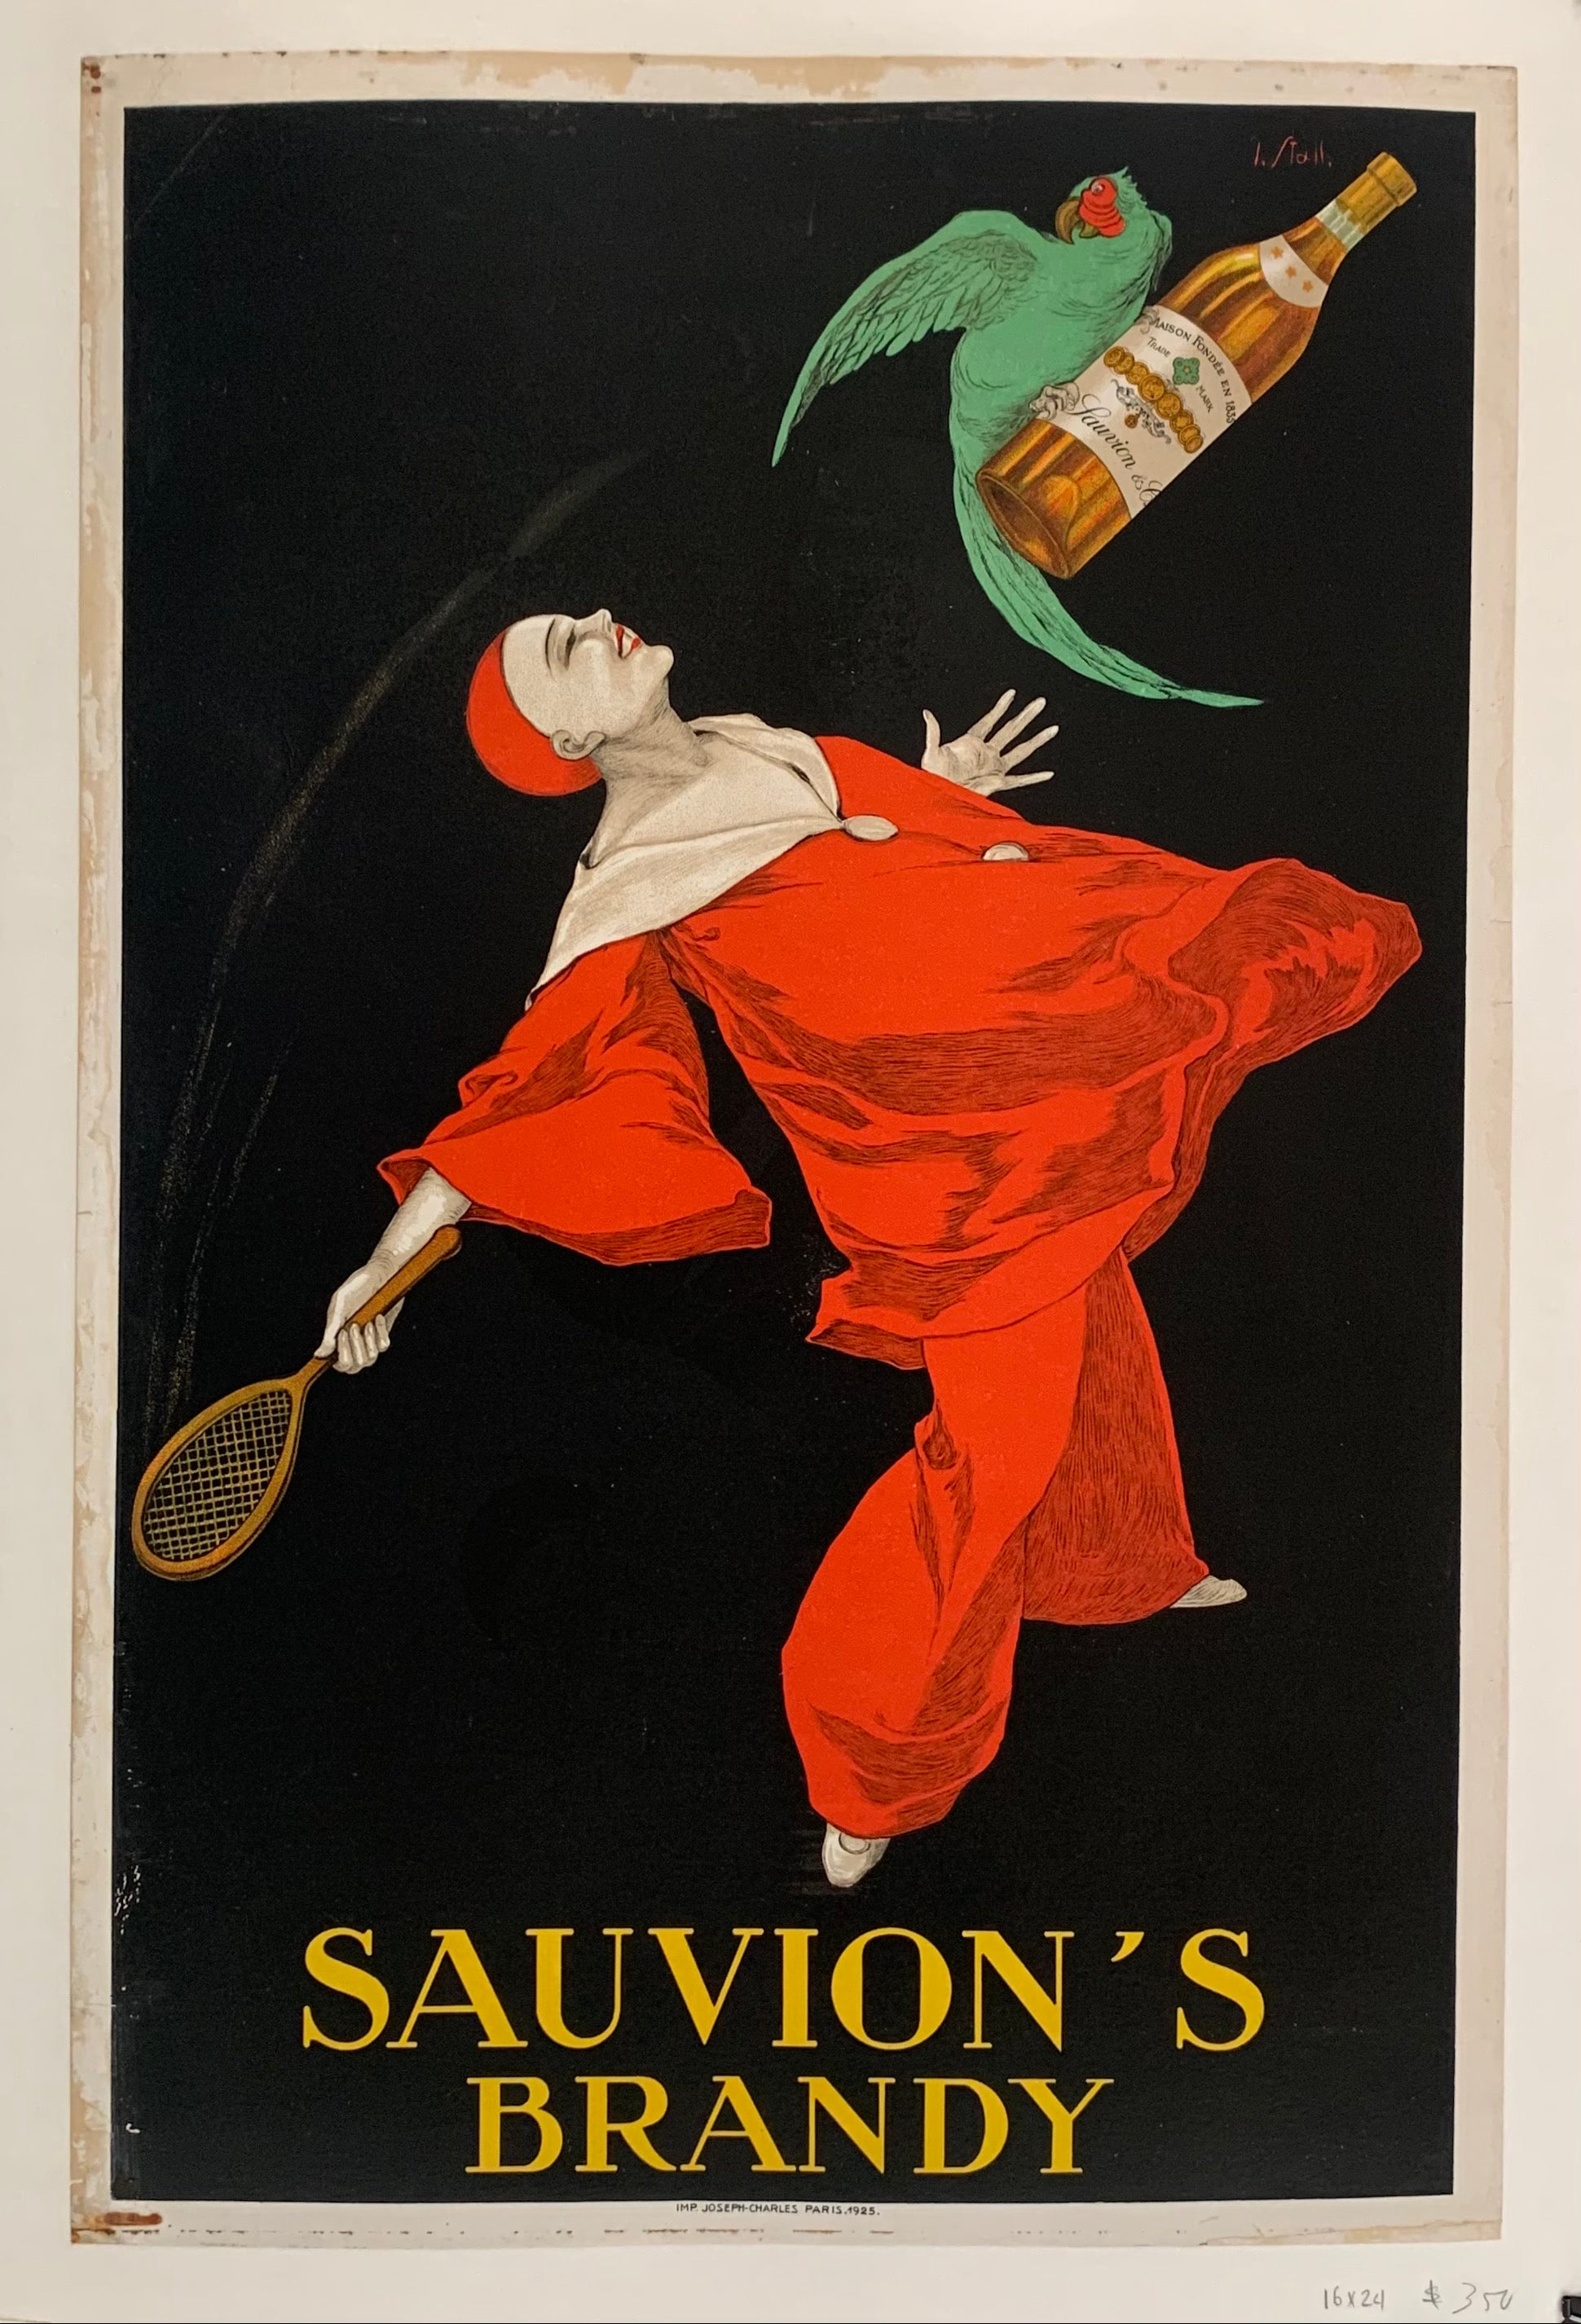 Poster showing a parrot stealing a bottle of brandy